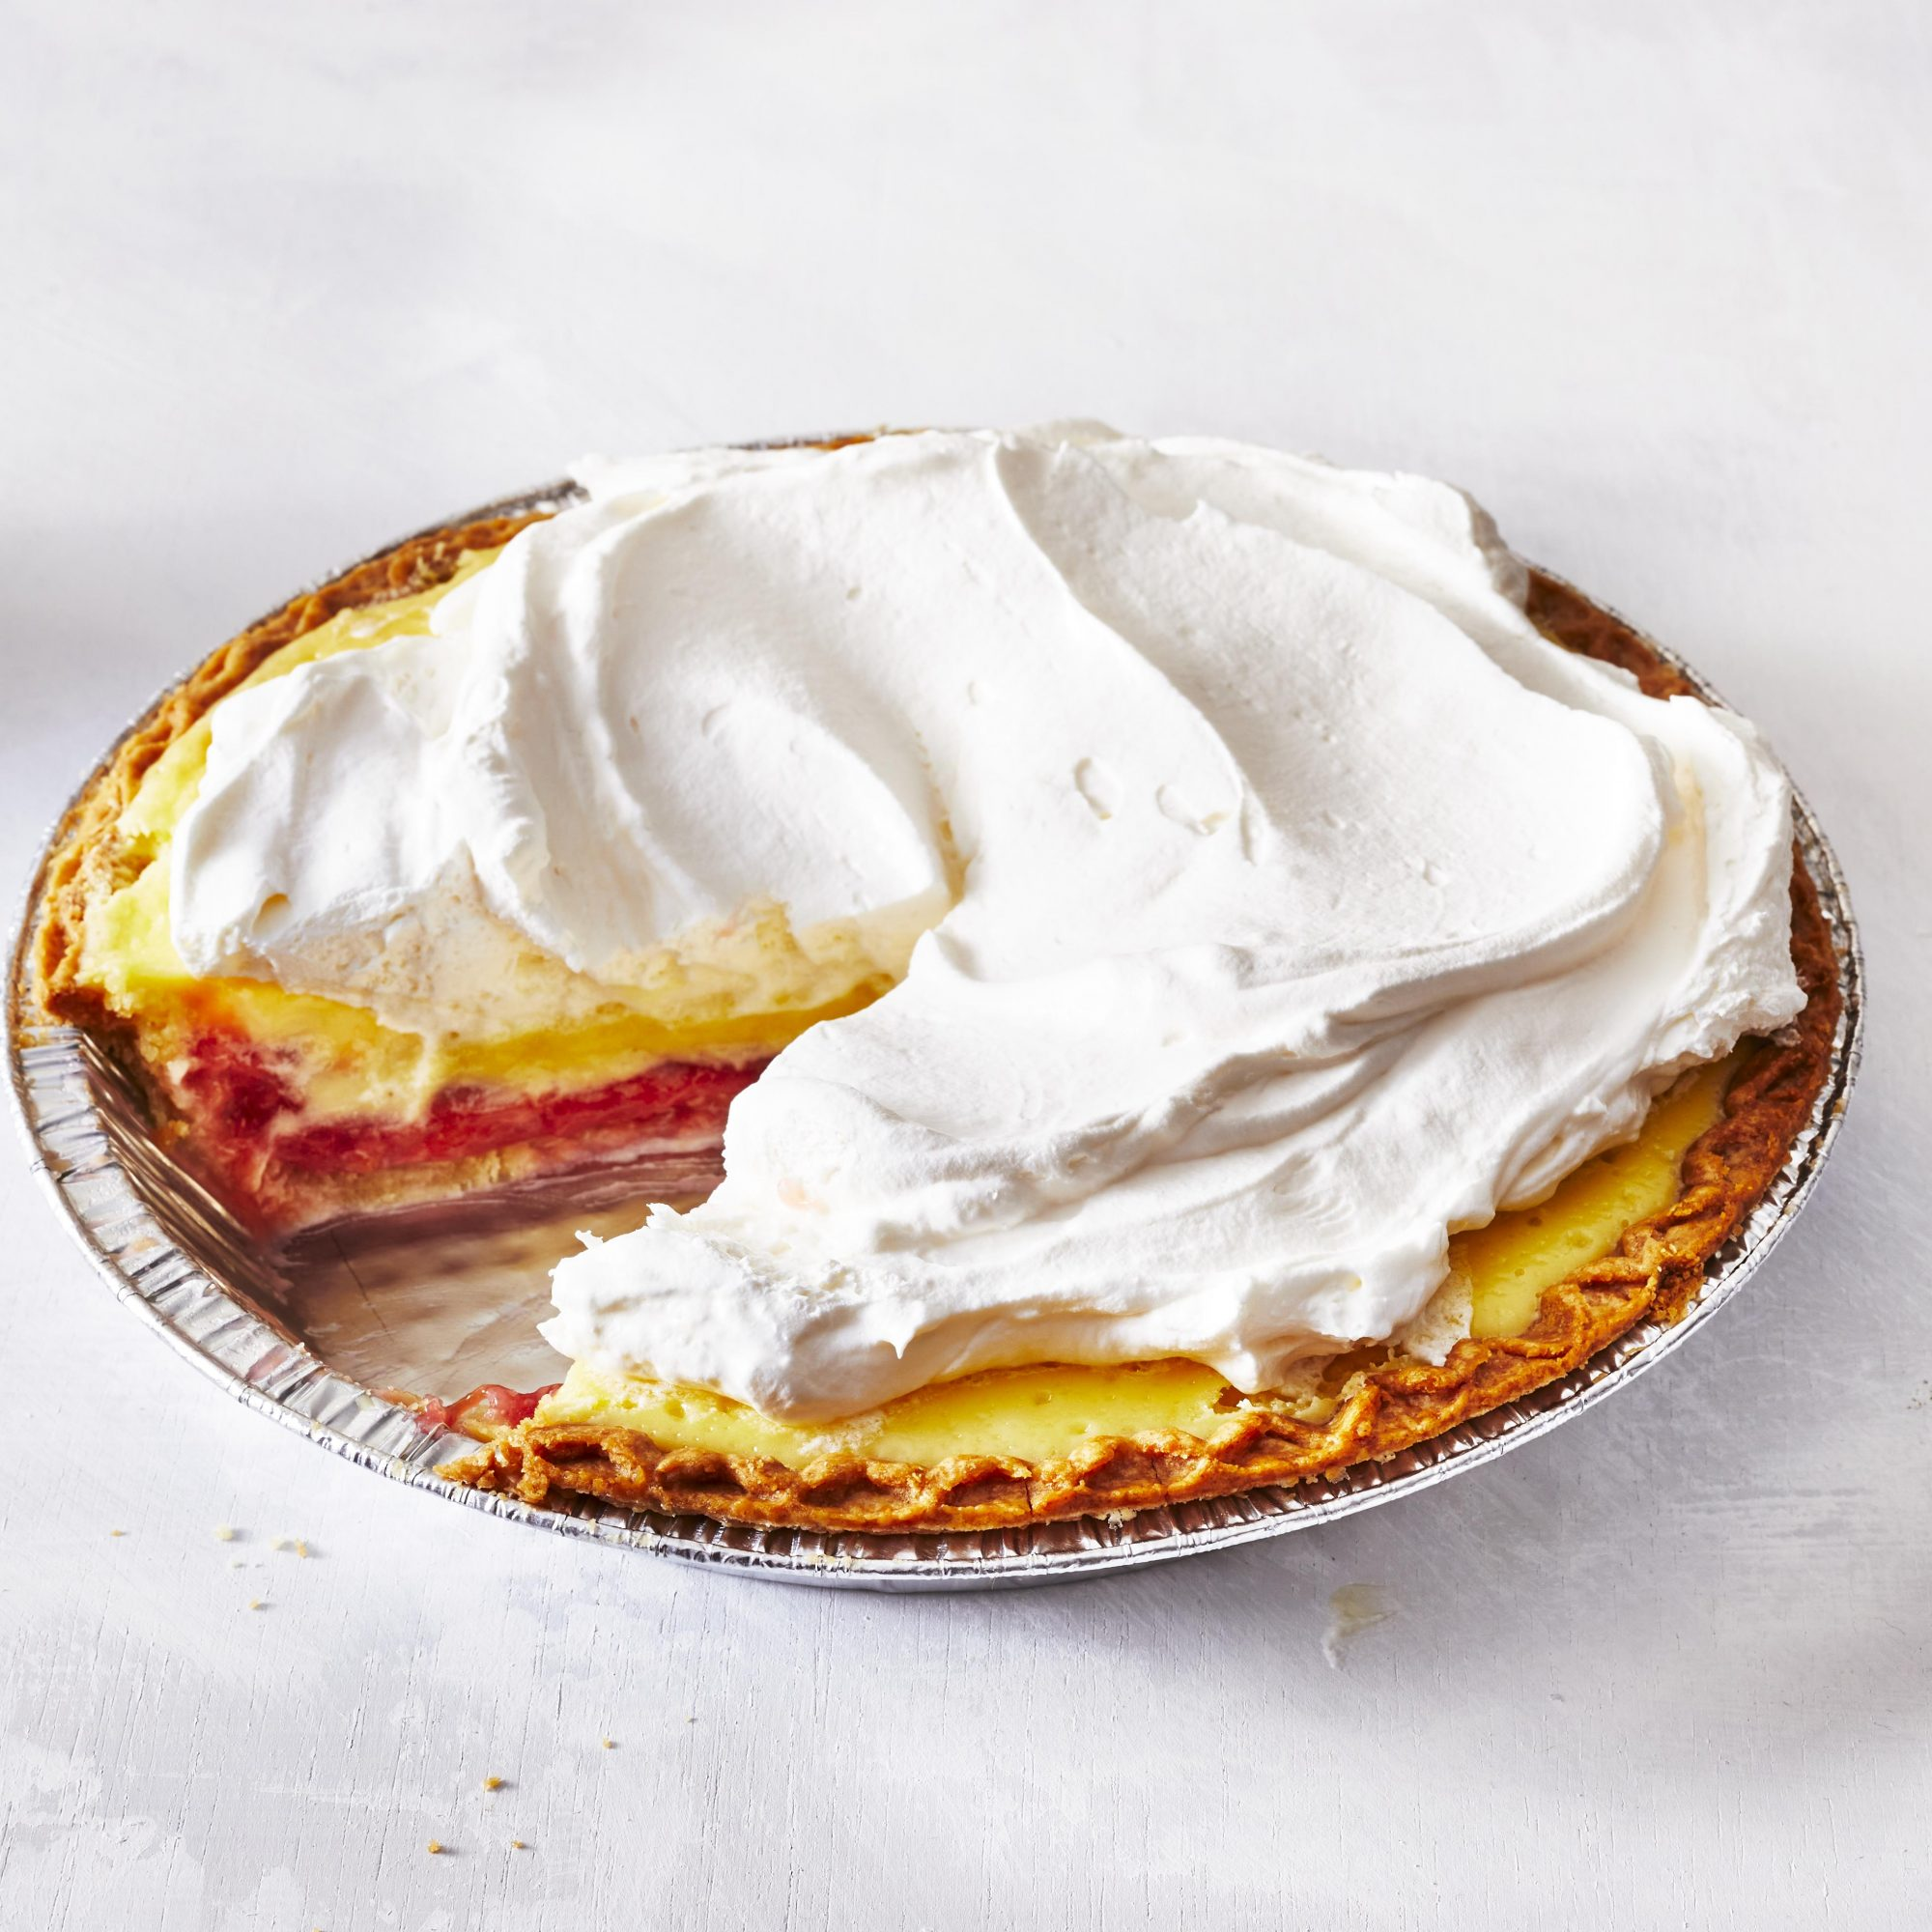 rhubarb cheesecake pie with whipped cream topping